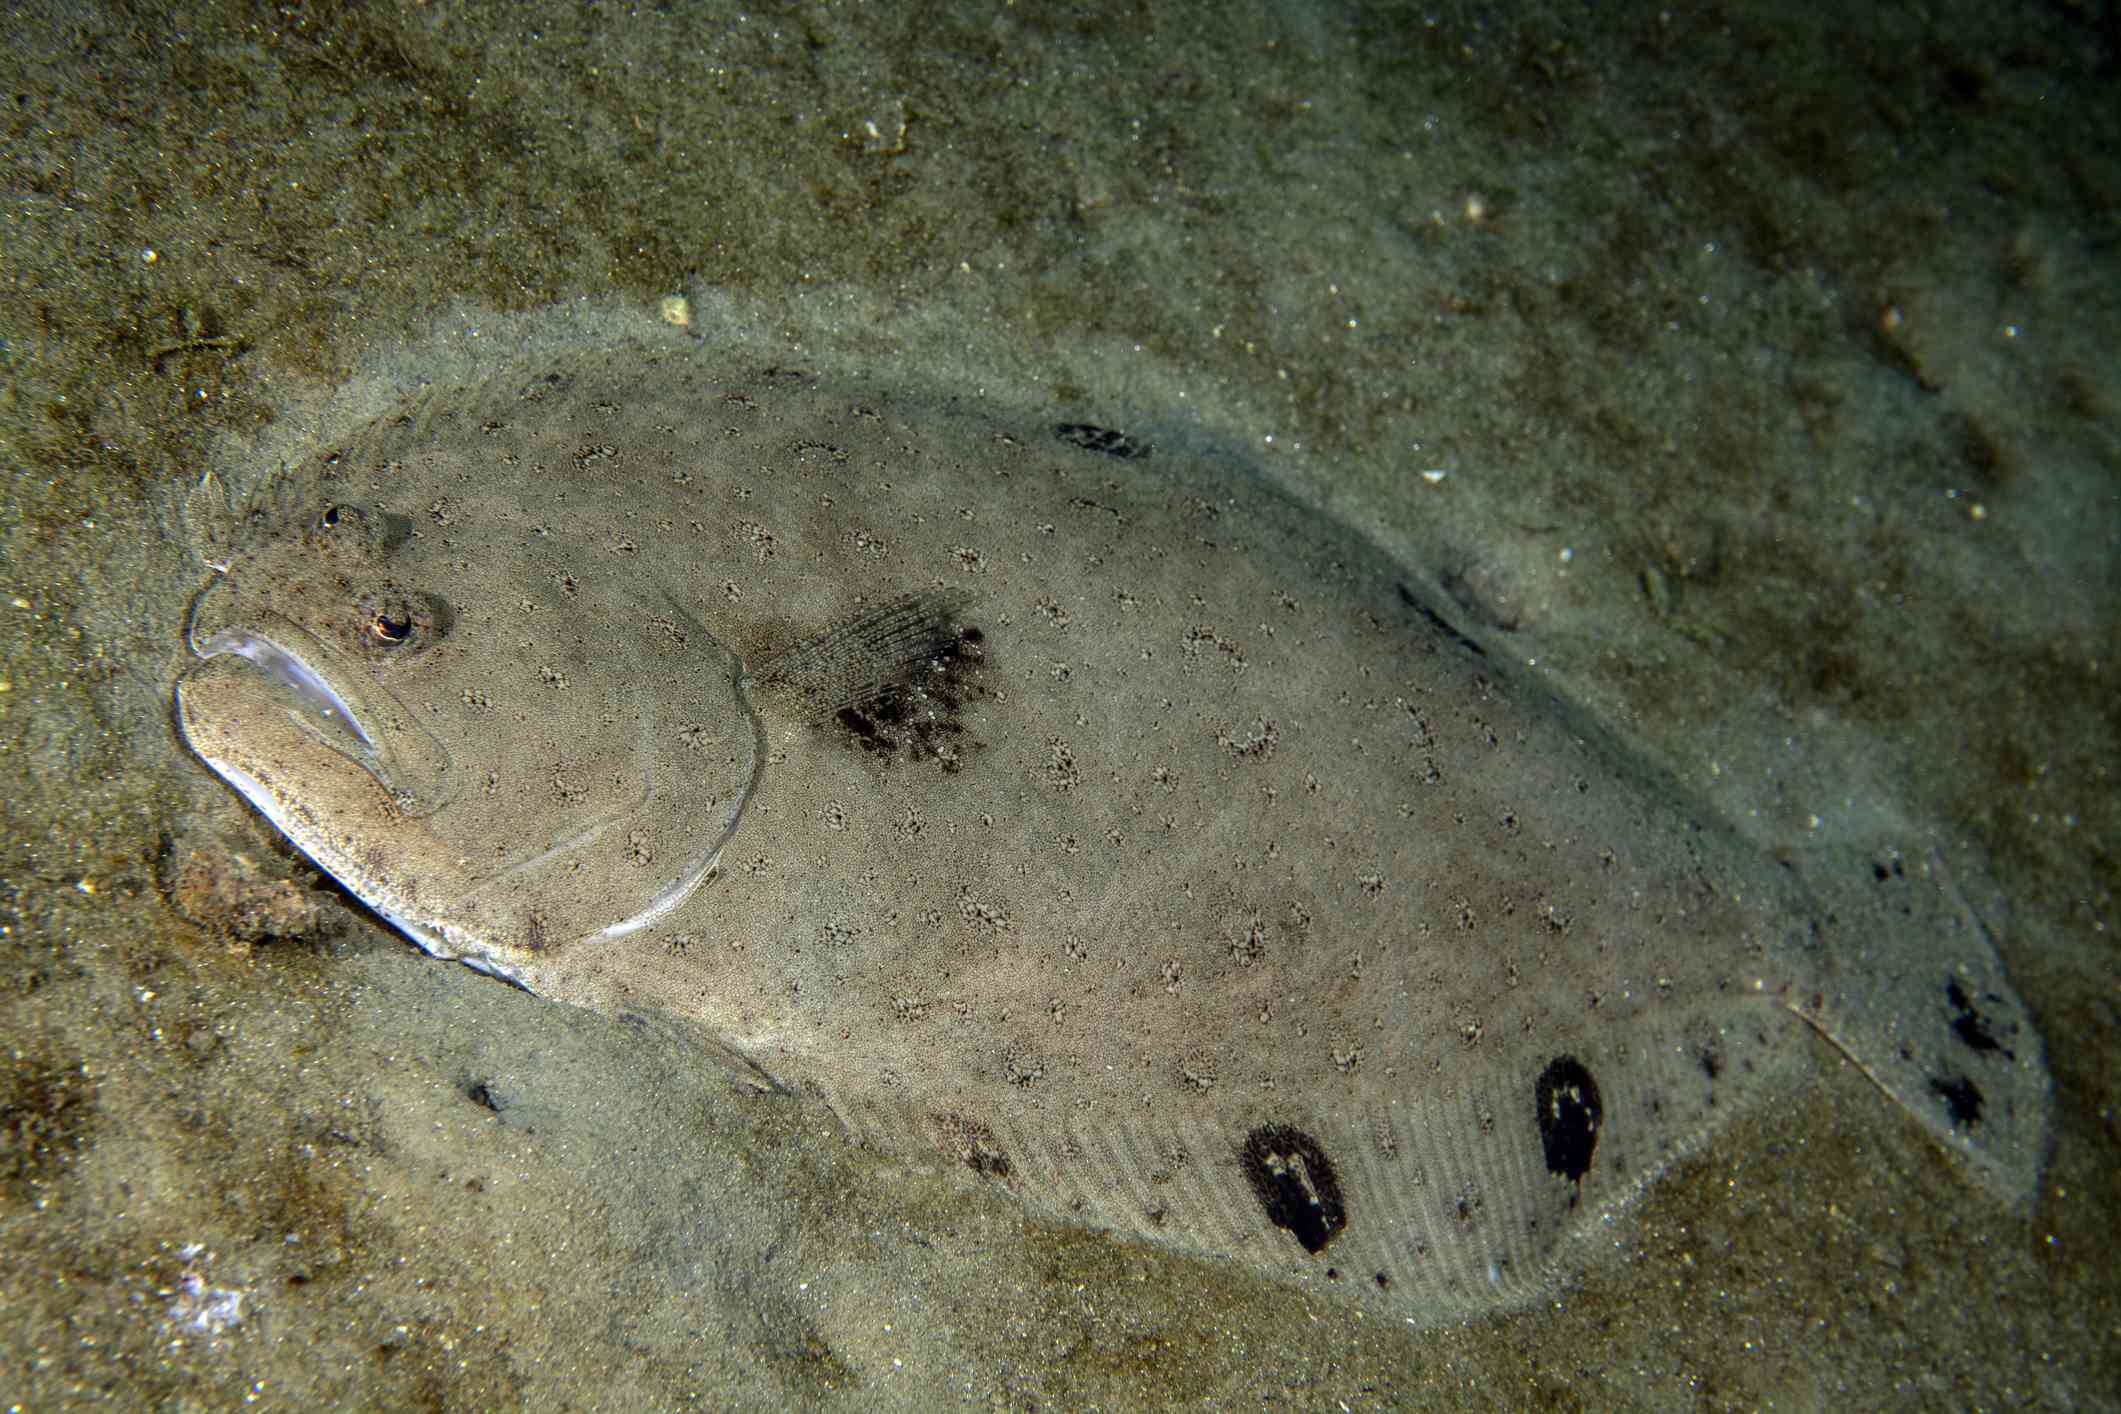 gray flounder with black spots rests flat on ocean floor and blends in